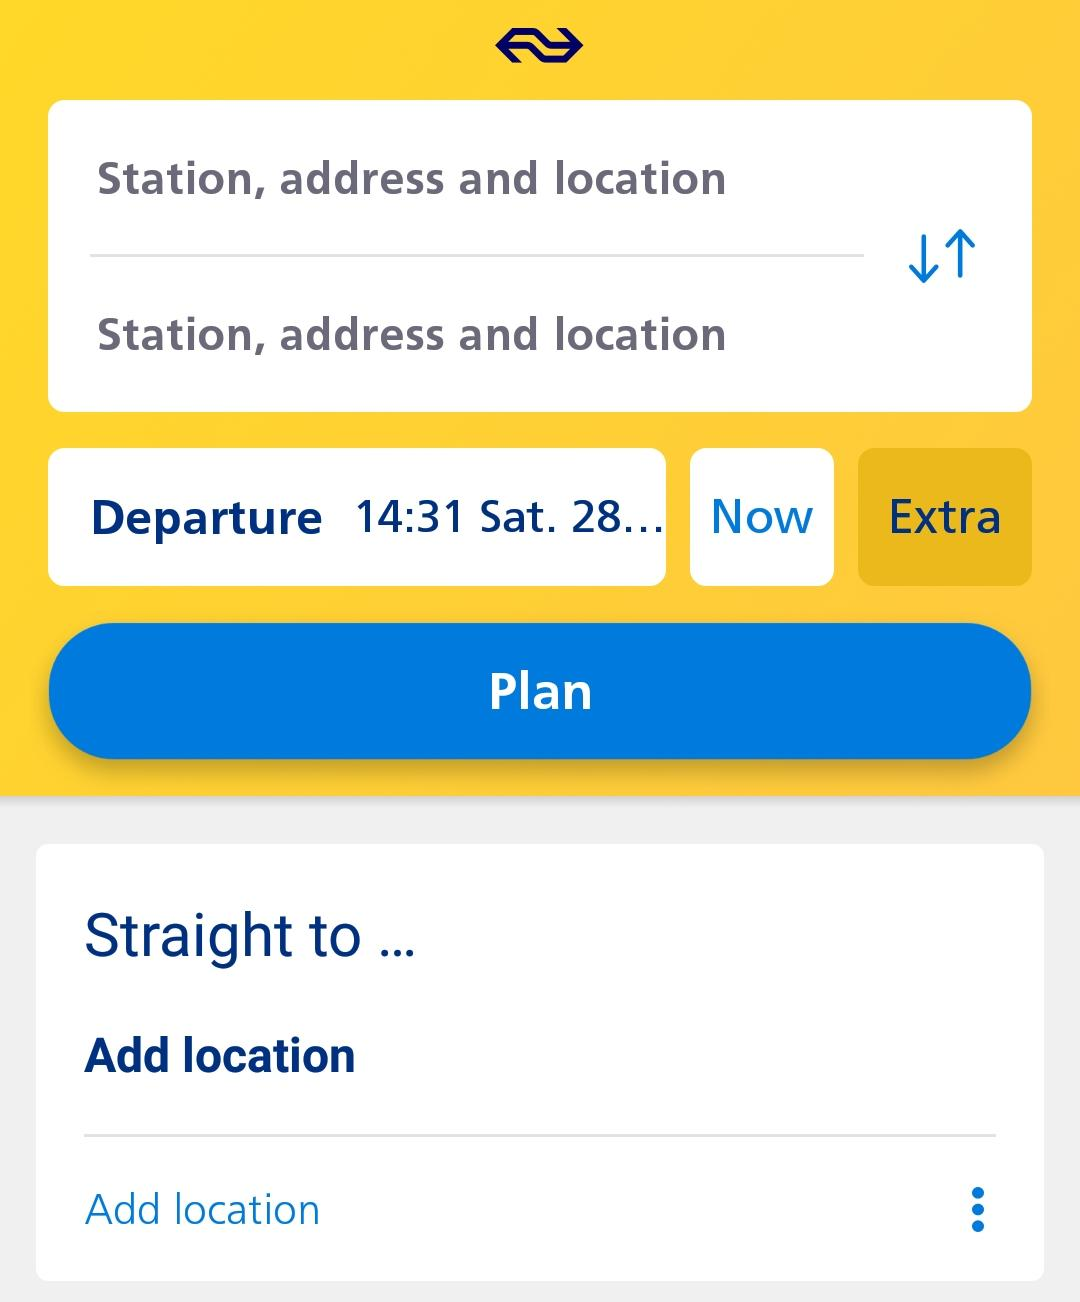 NS app to plan your route